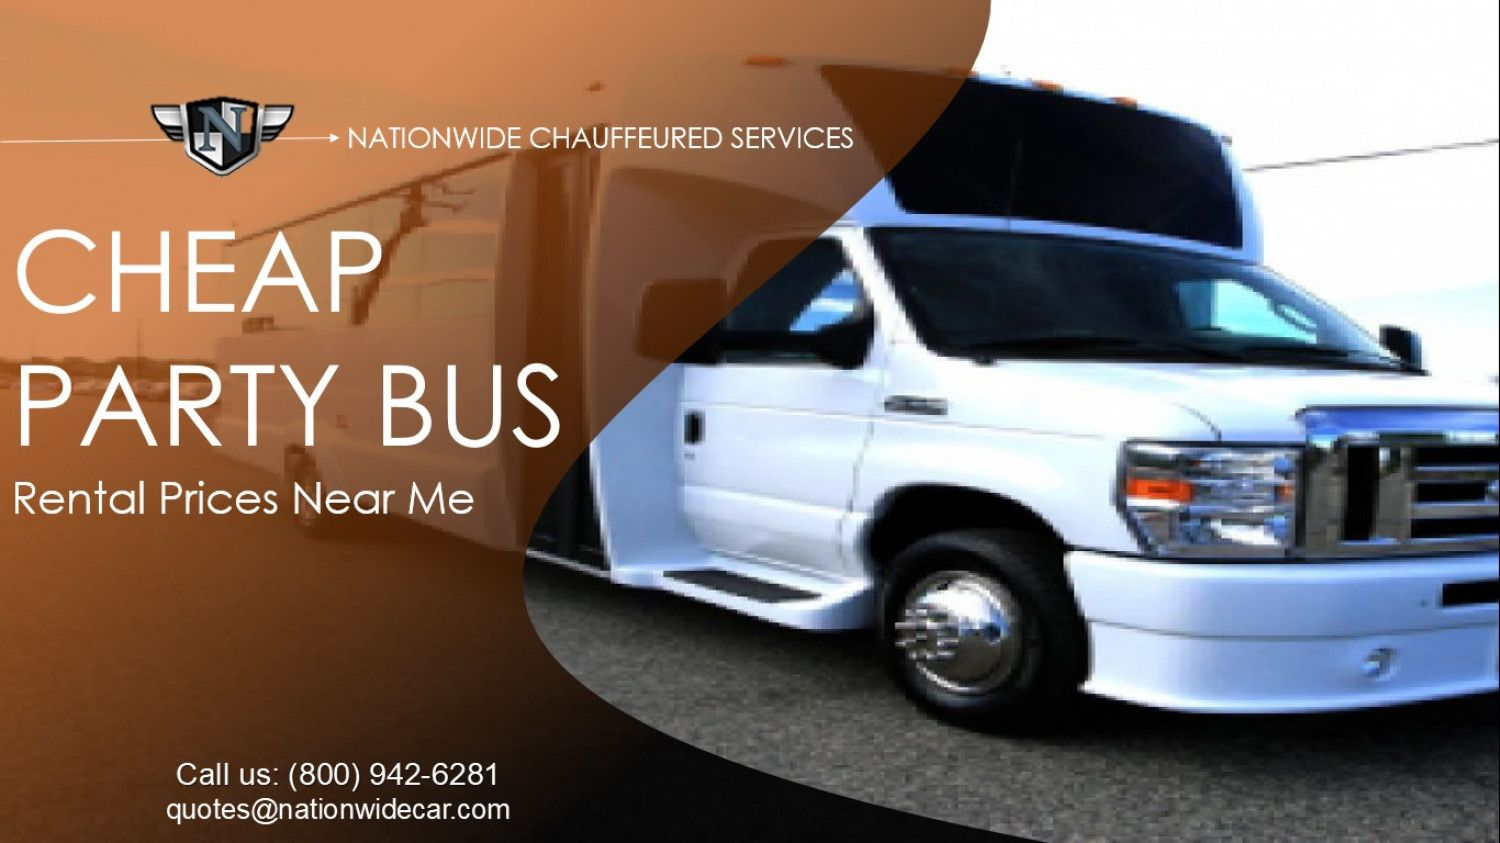 Cheap Party Bus Rental Prices Near Me Visual.ly